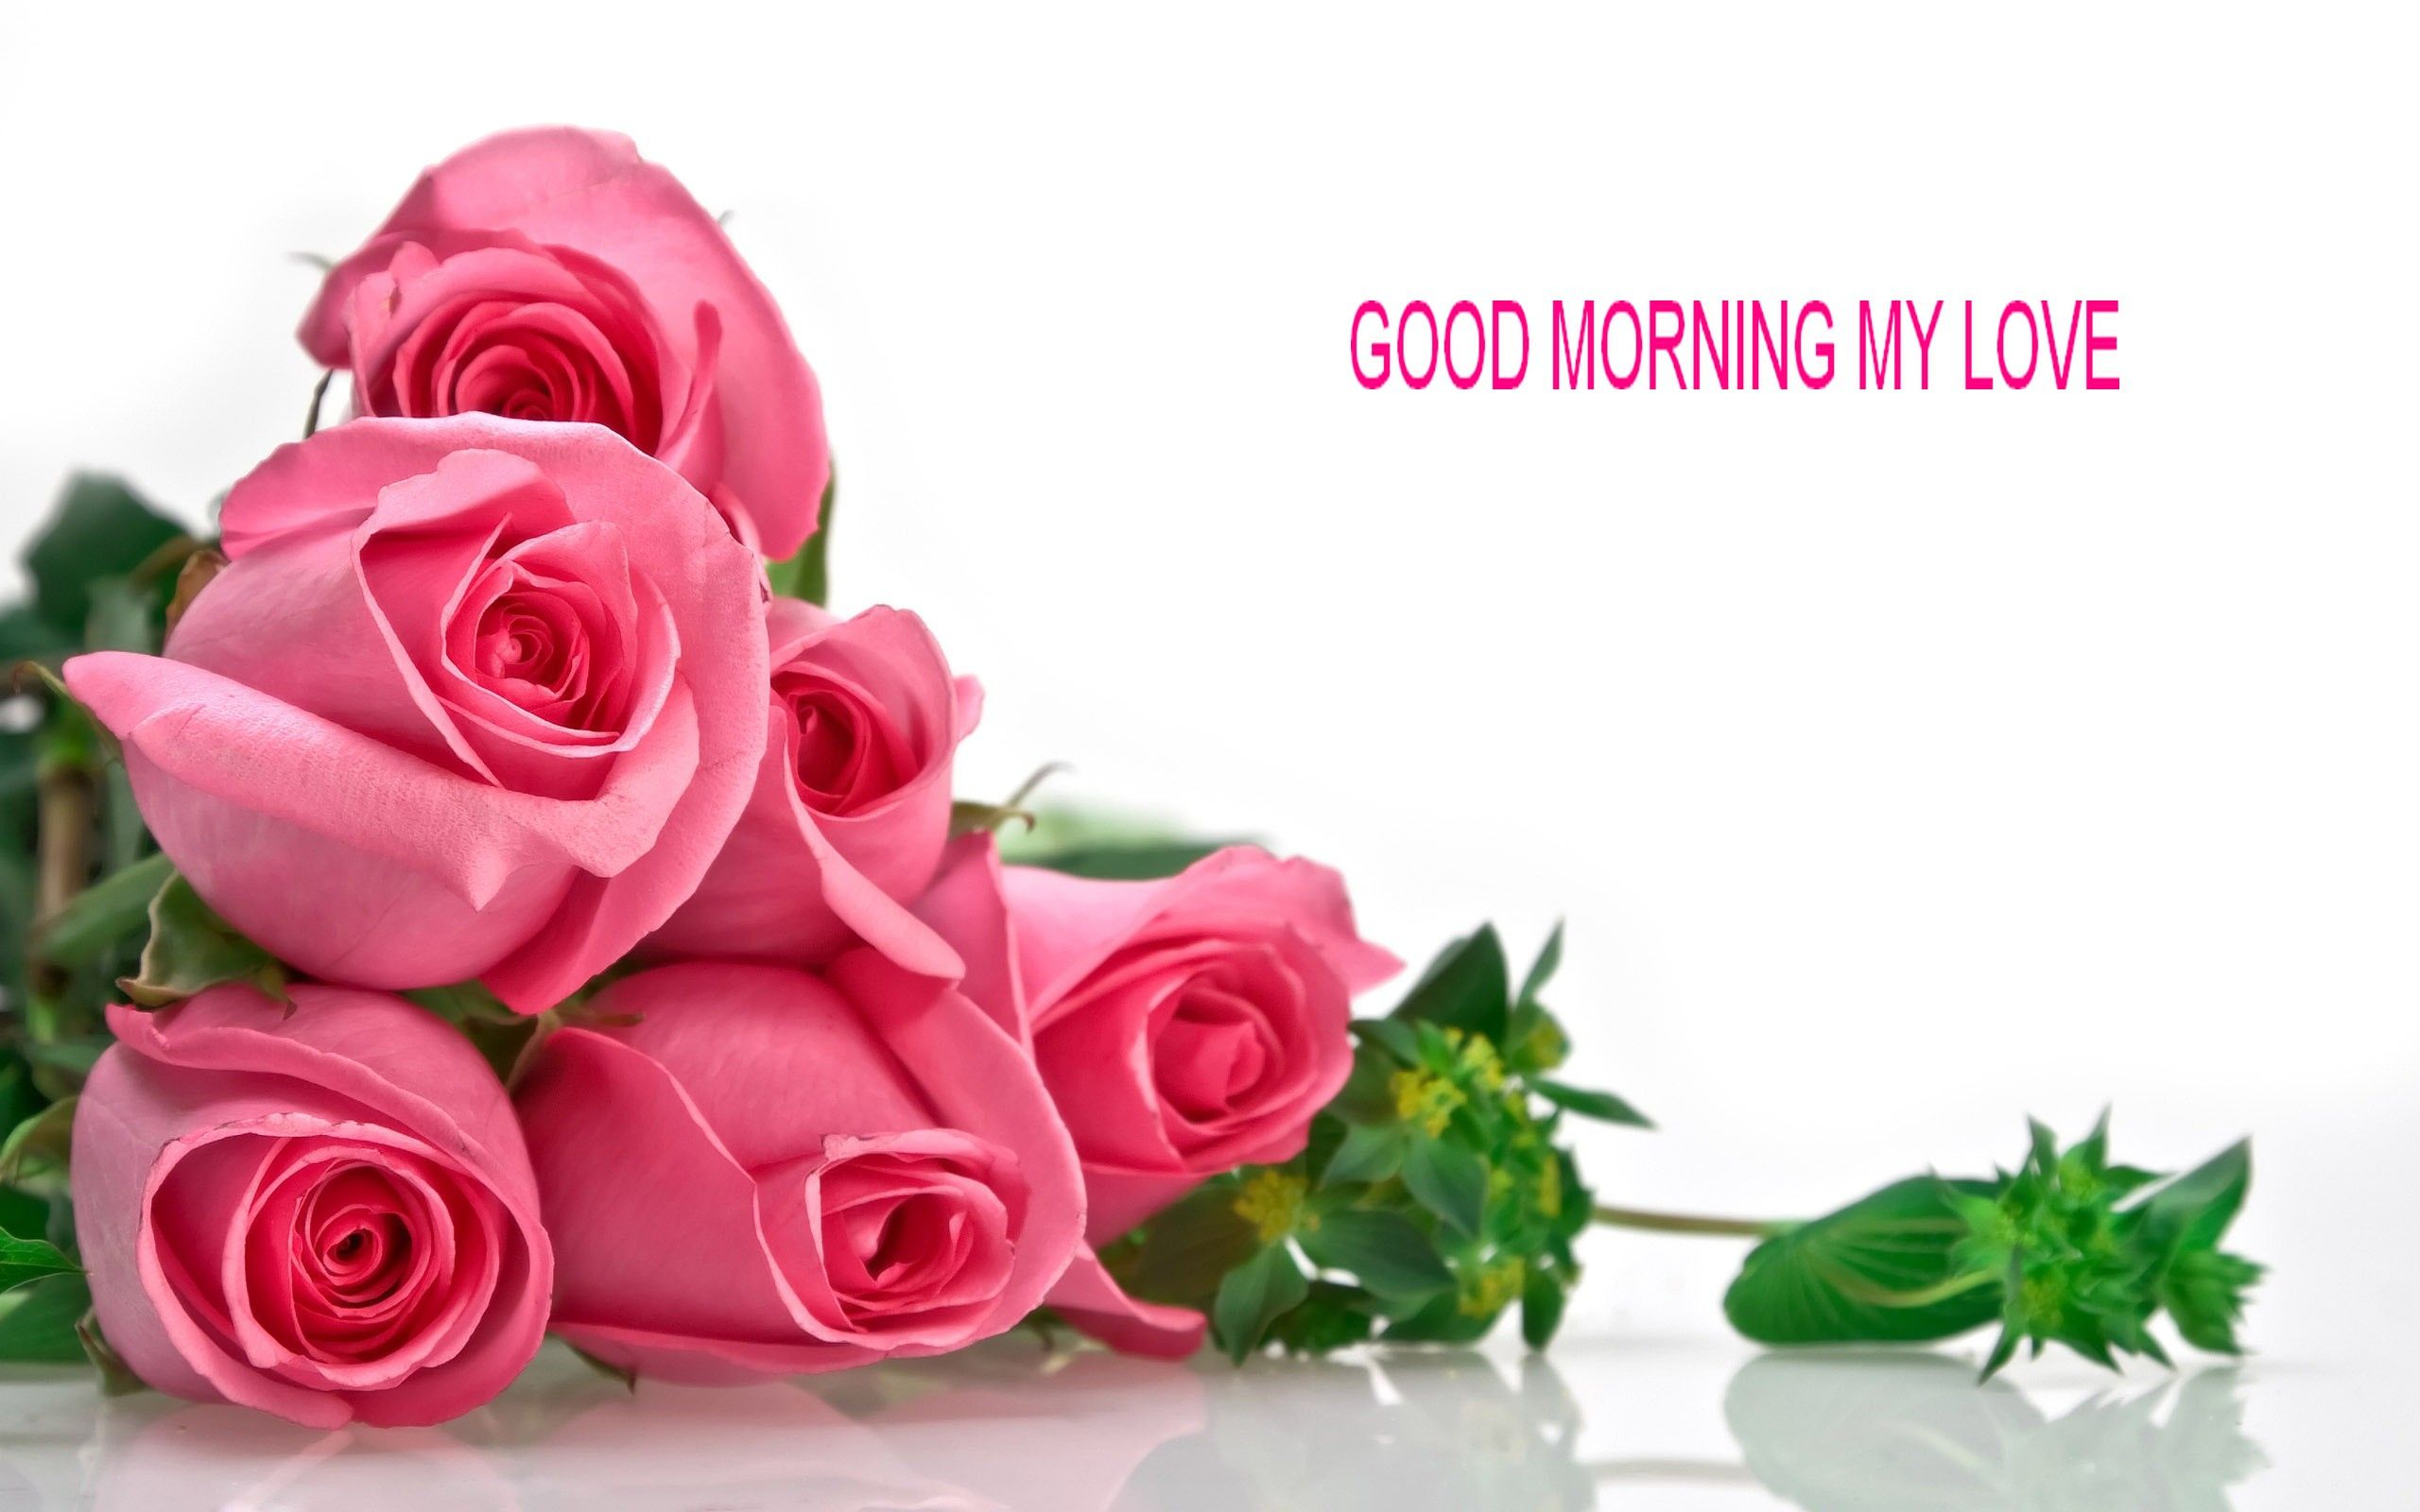 Wallpaper download in love - Good Morning Rose Wallpapers Free Download